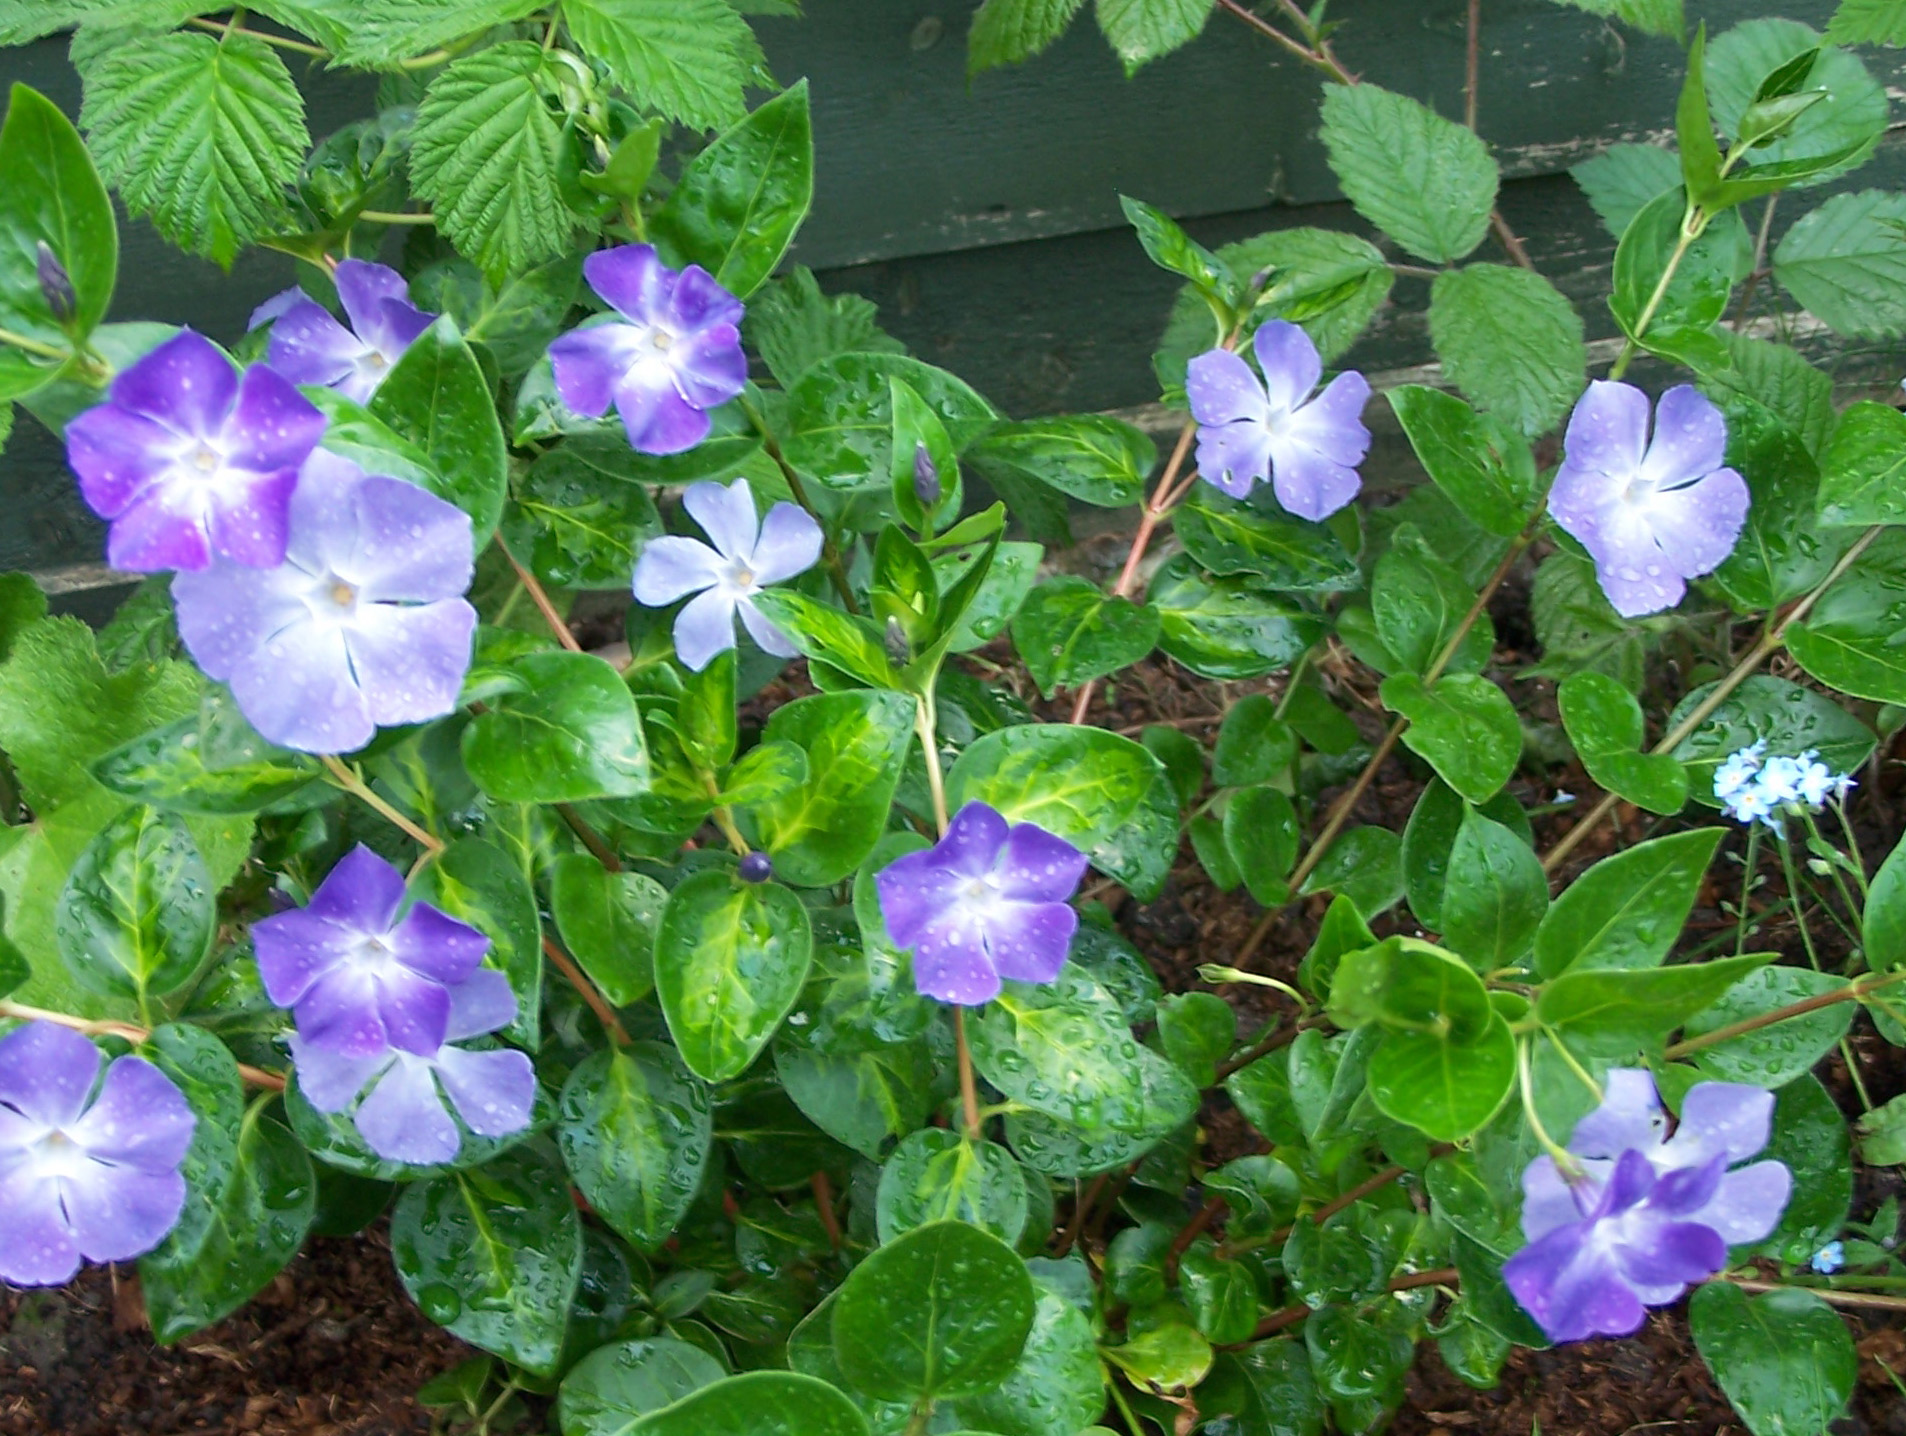 Vinca major 39 maculata 39 periwinkle judi the gardener for Vinca major